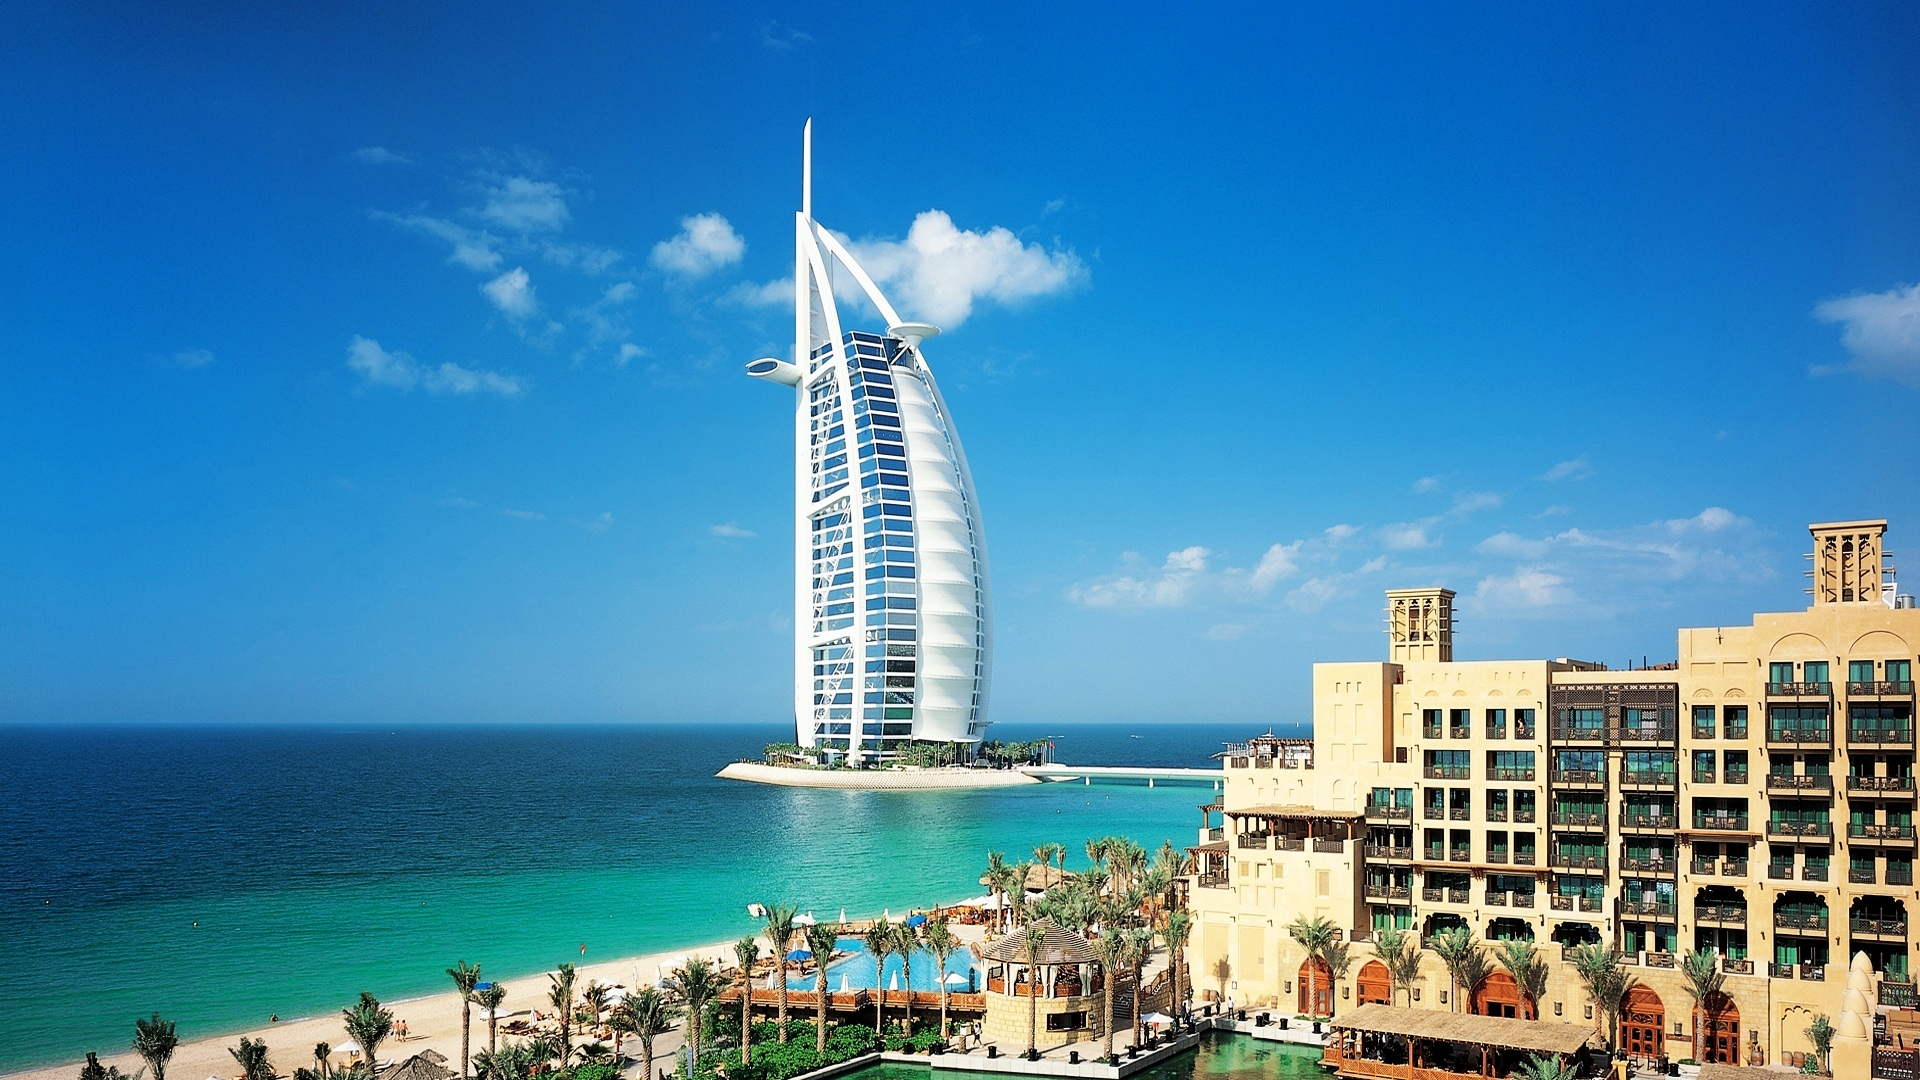 32 most beautiful dubai wallpapers for free download for Home wallpaper uae